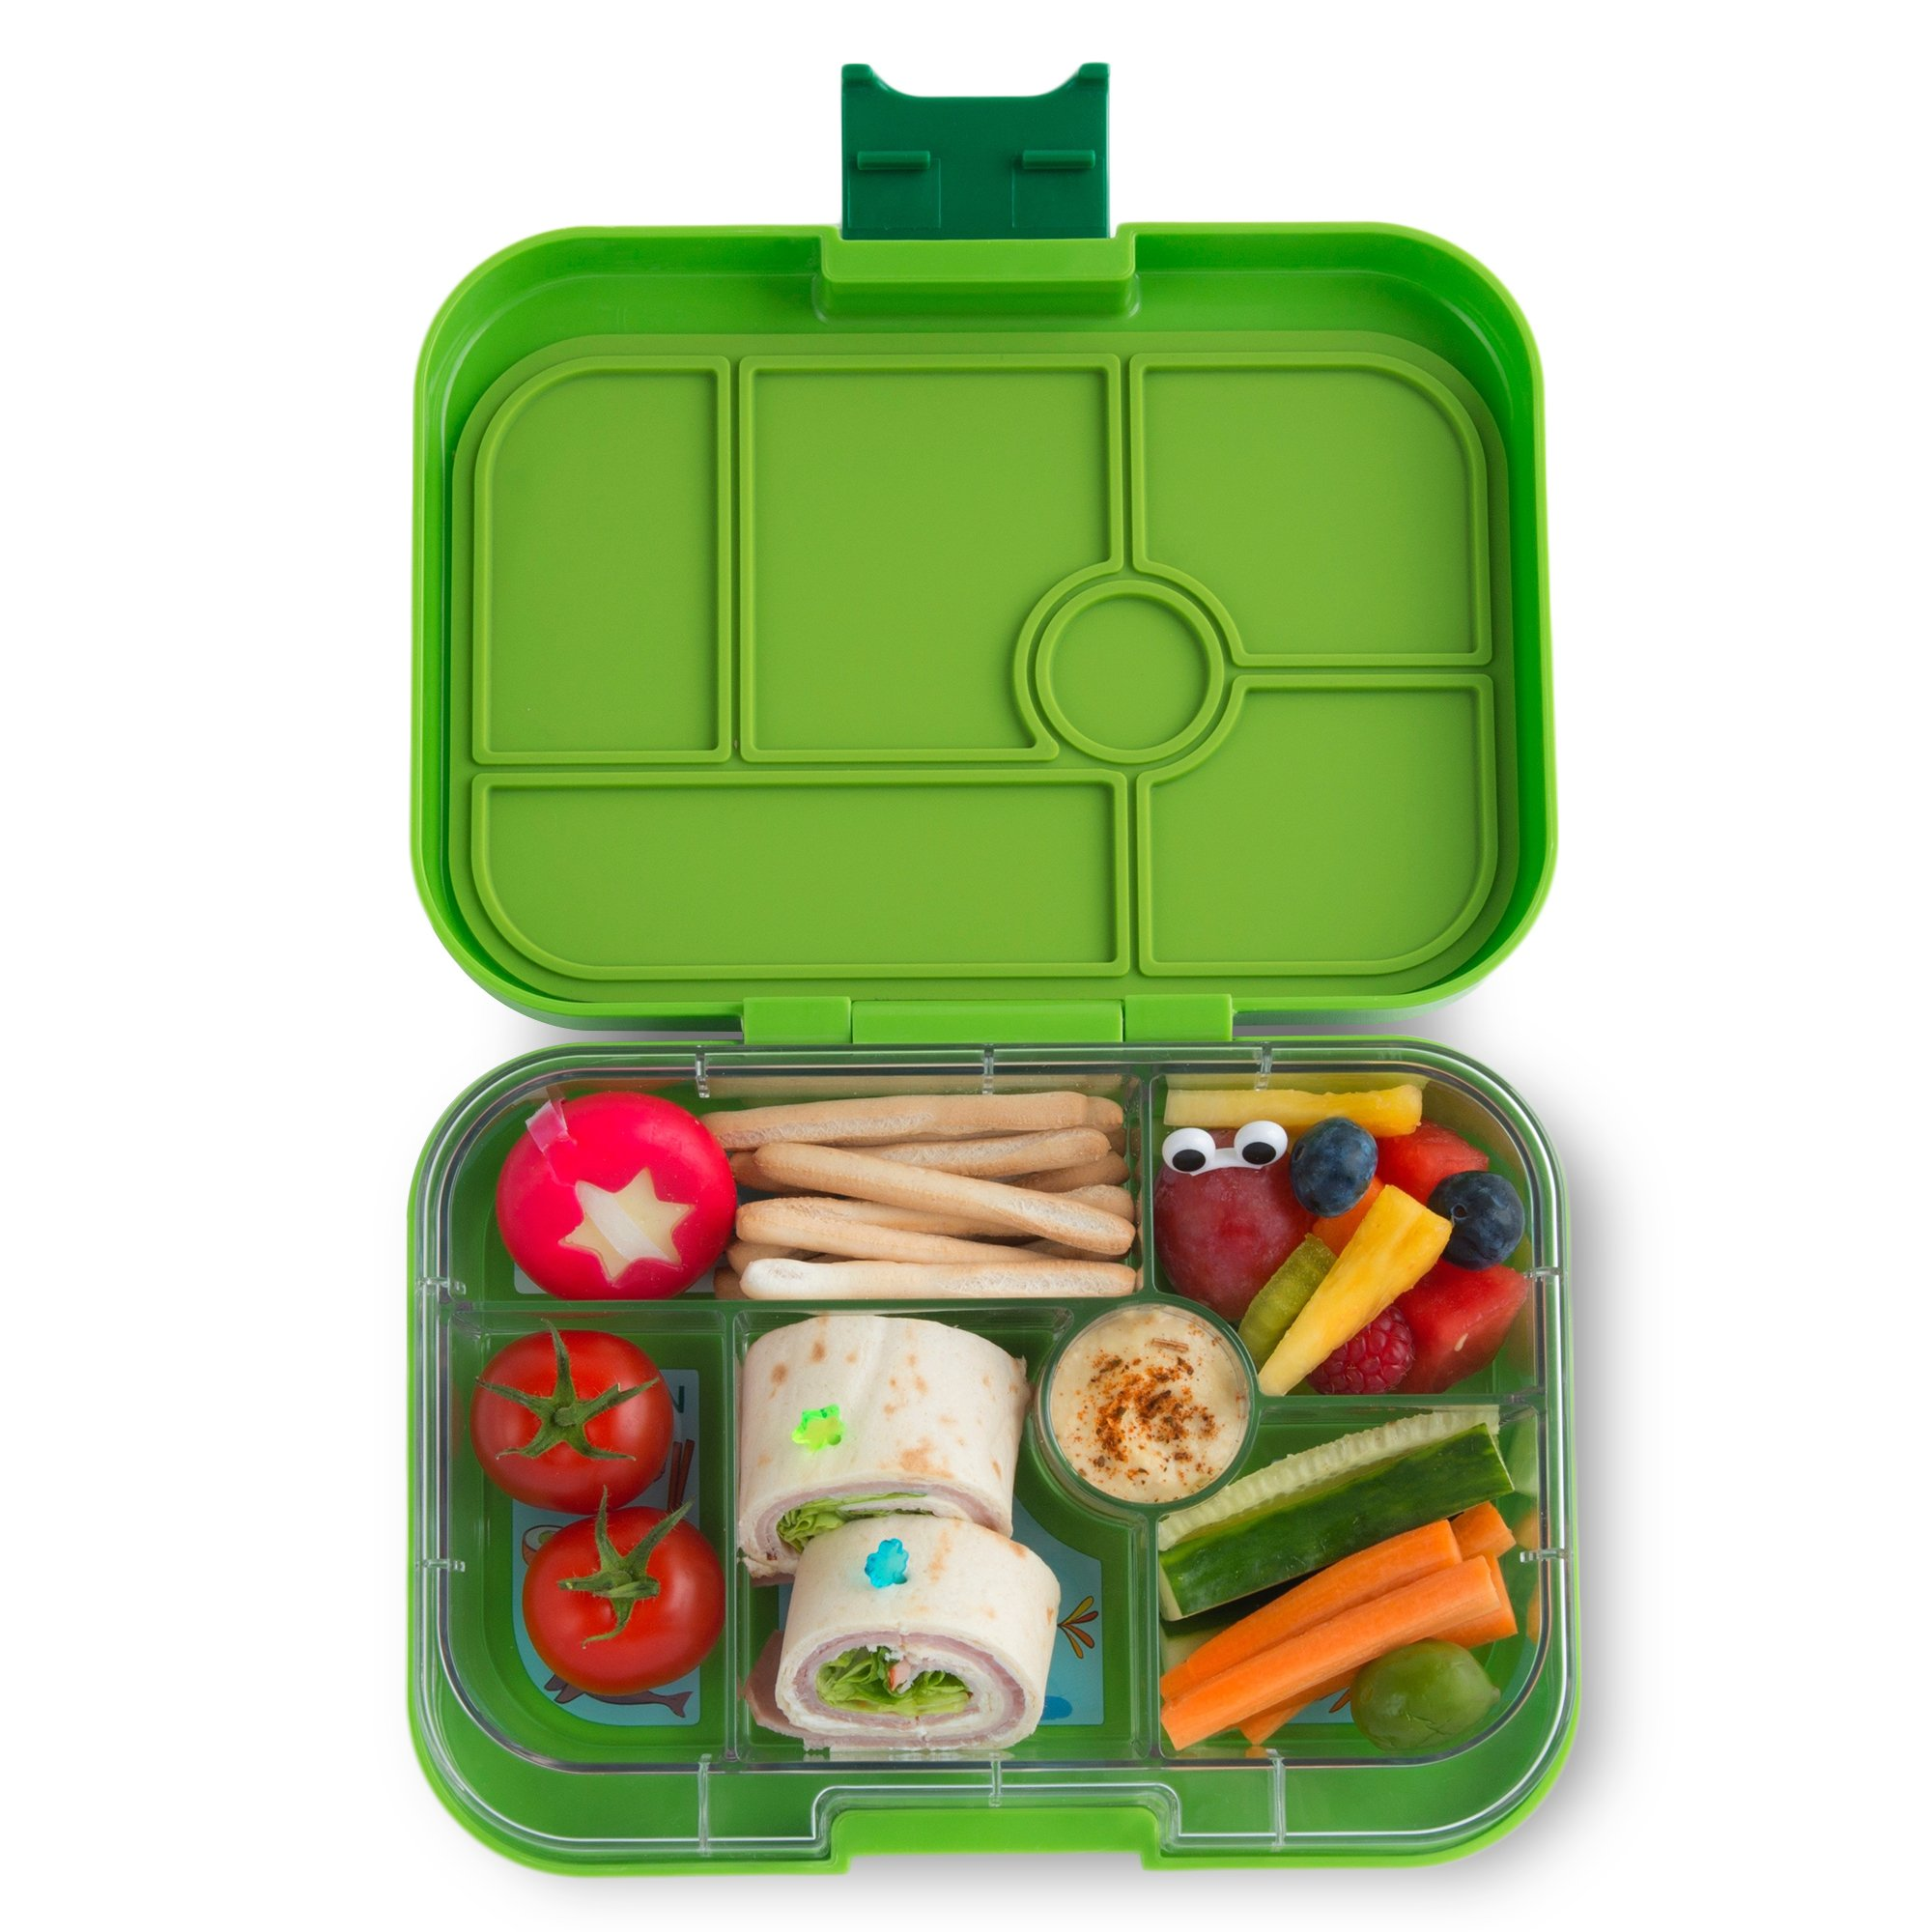 YUMBOX Original (Avocado Green) Leakproof Bento Lunch Box Container for Kids: Bento-style lunch box offers Durable, Leak-proof, On-the-go Meal and Snack Packing by Yumbox (Image #1)